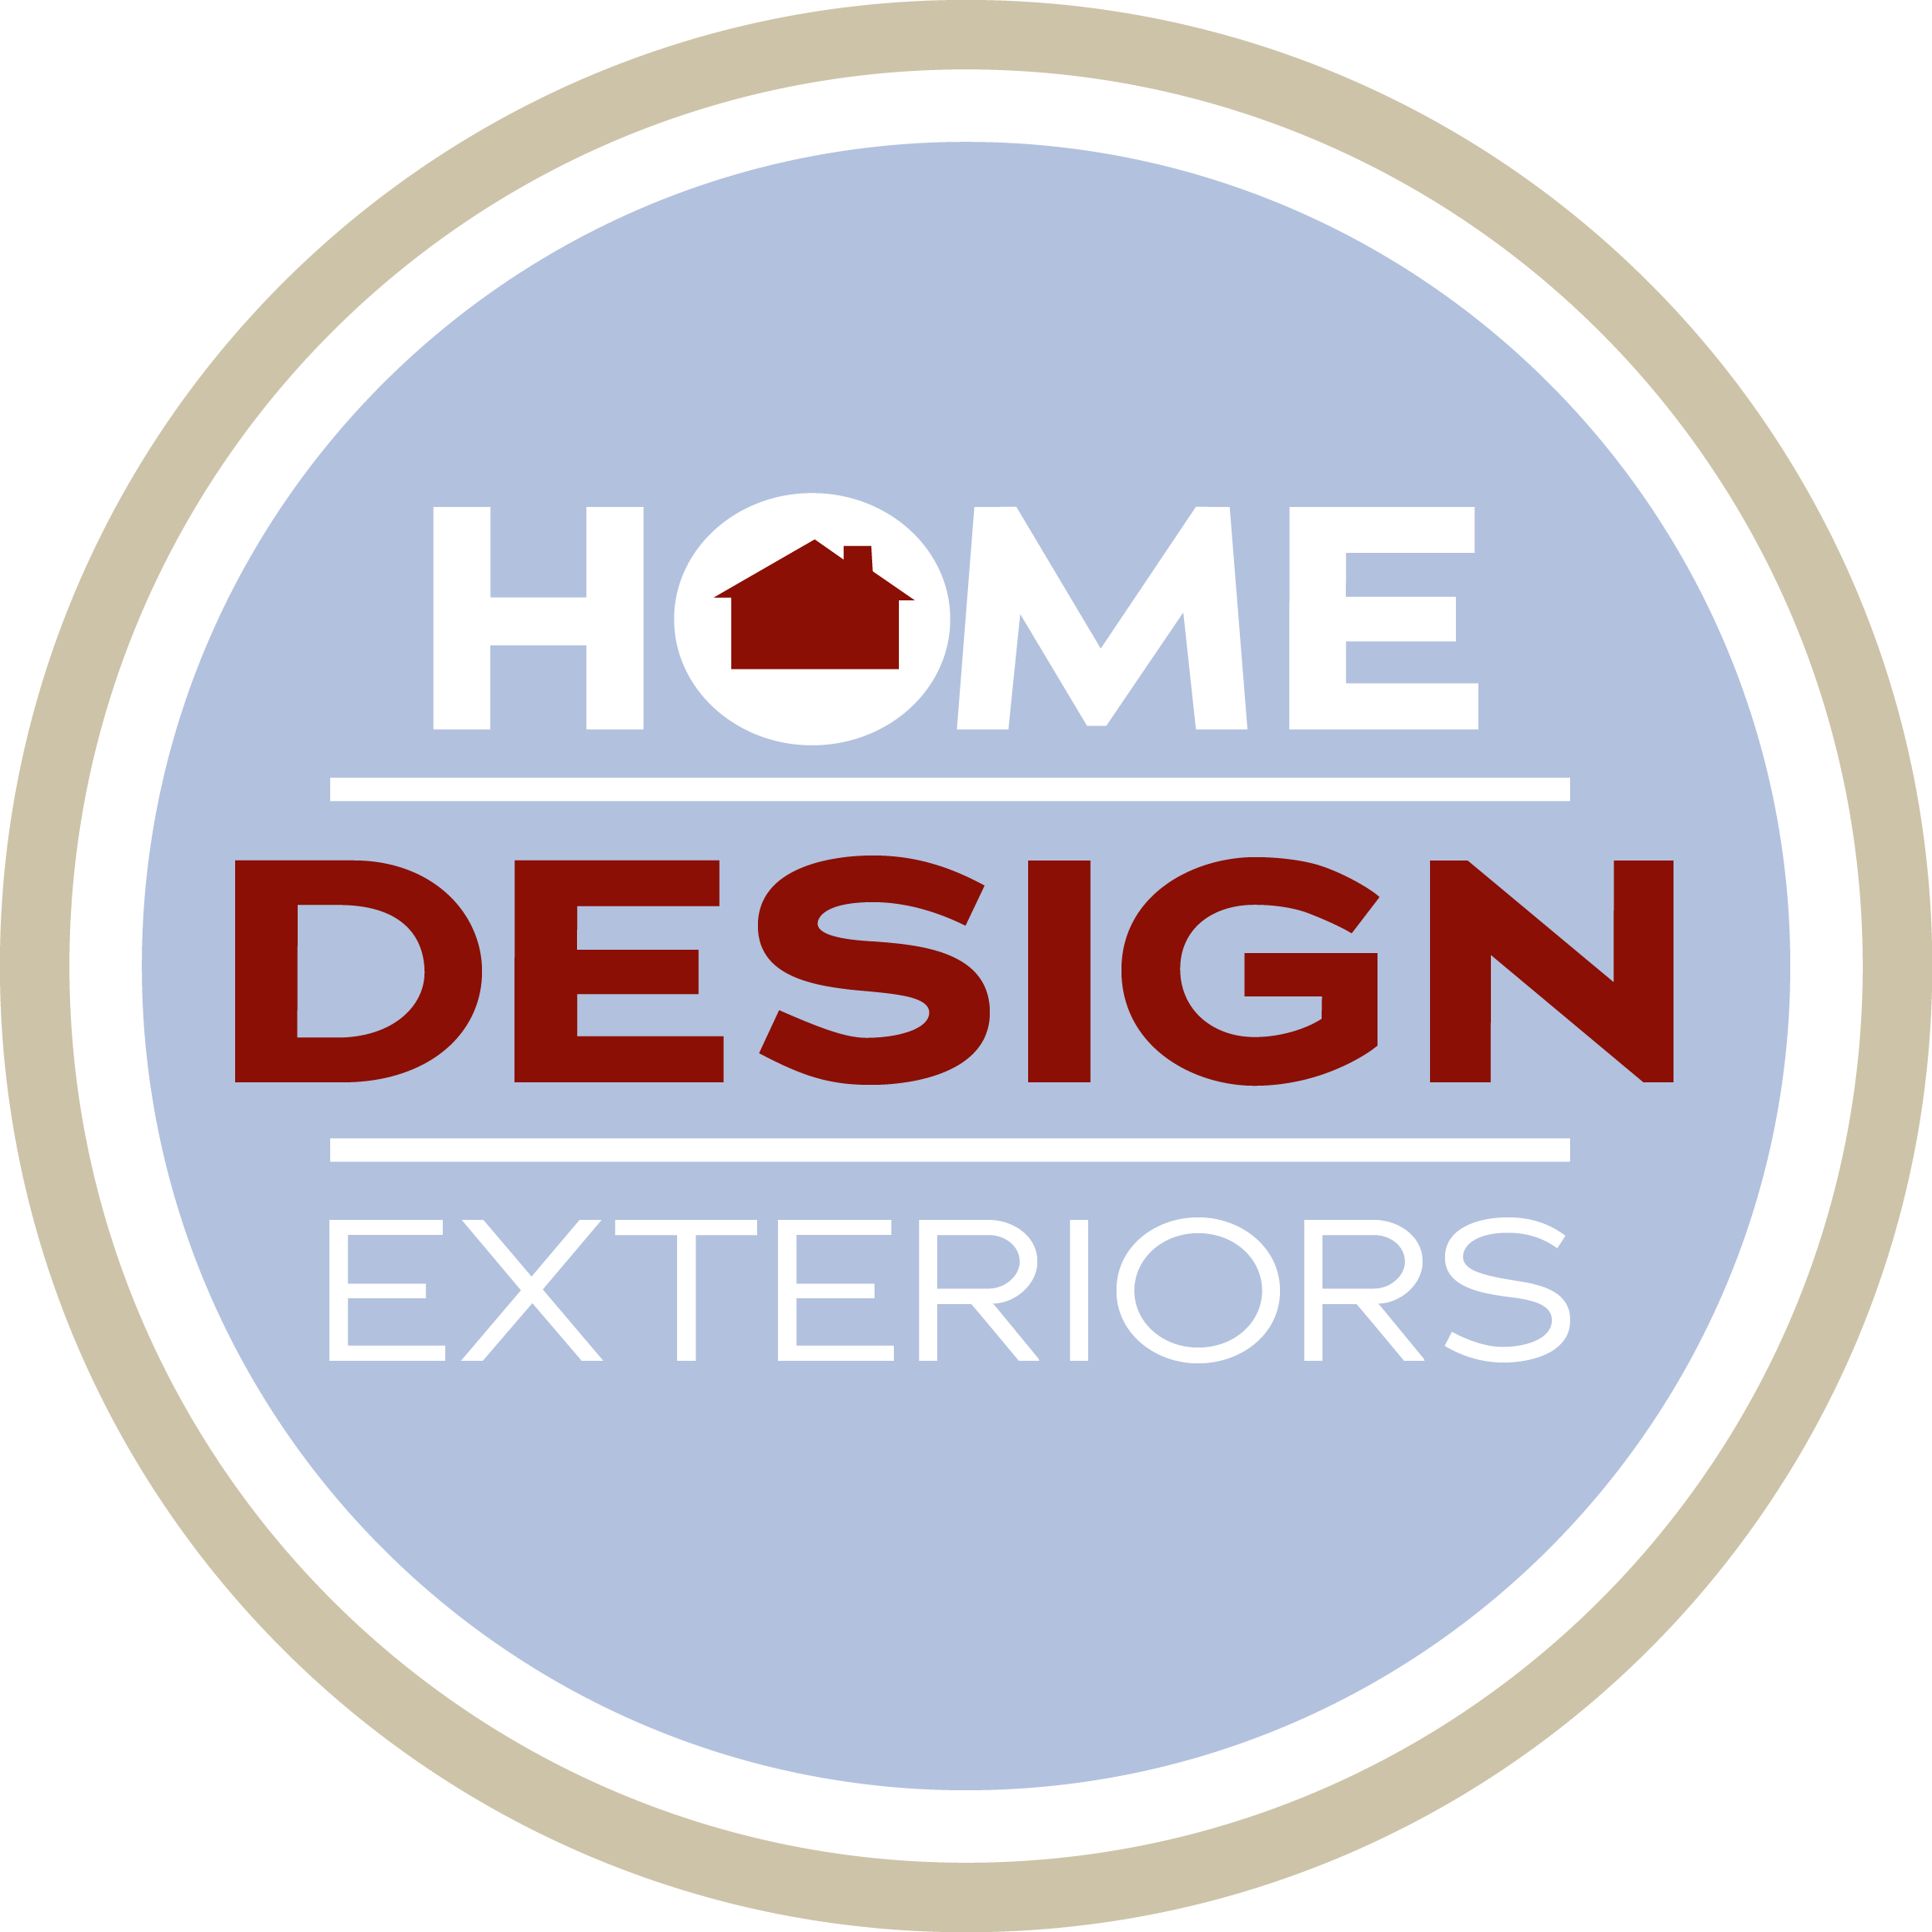 Home design exteriors coupons near me in parker 8coupons for Home designers near me